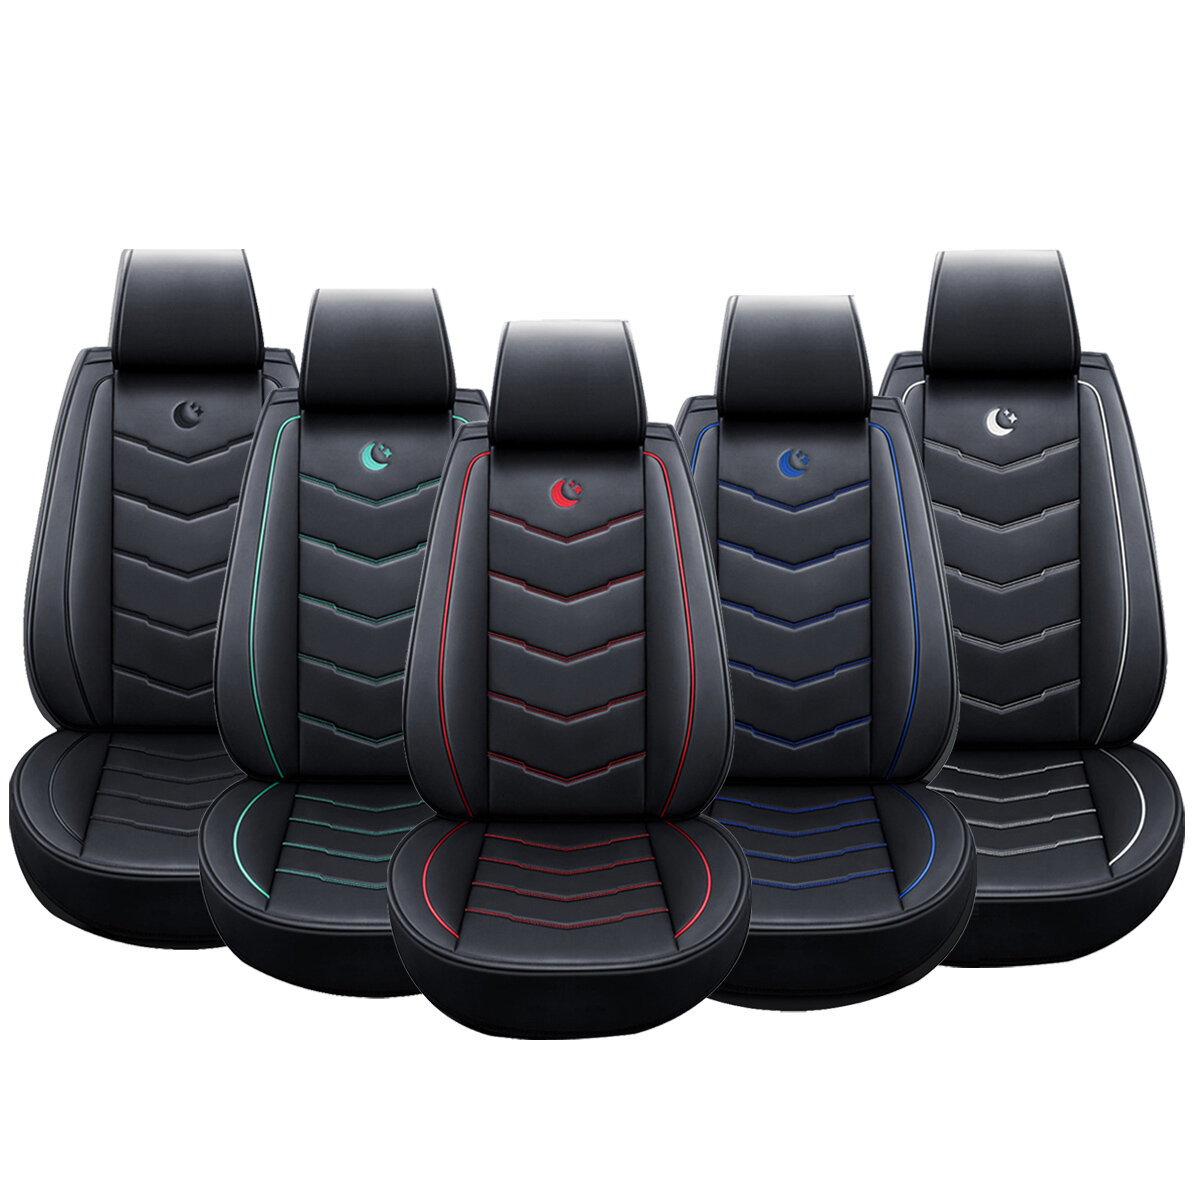 Universal Car Front Seat Cover Chair Cushion Pad Mat Protector W/ Headrest Cover from Banggood